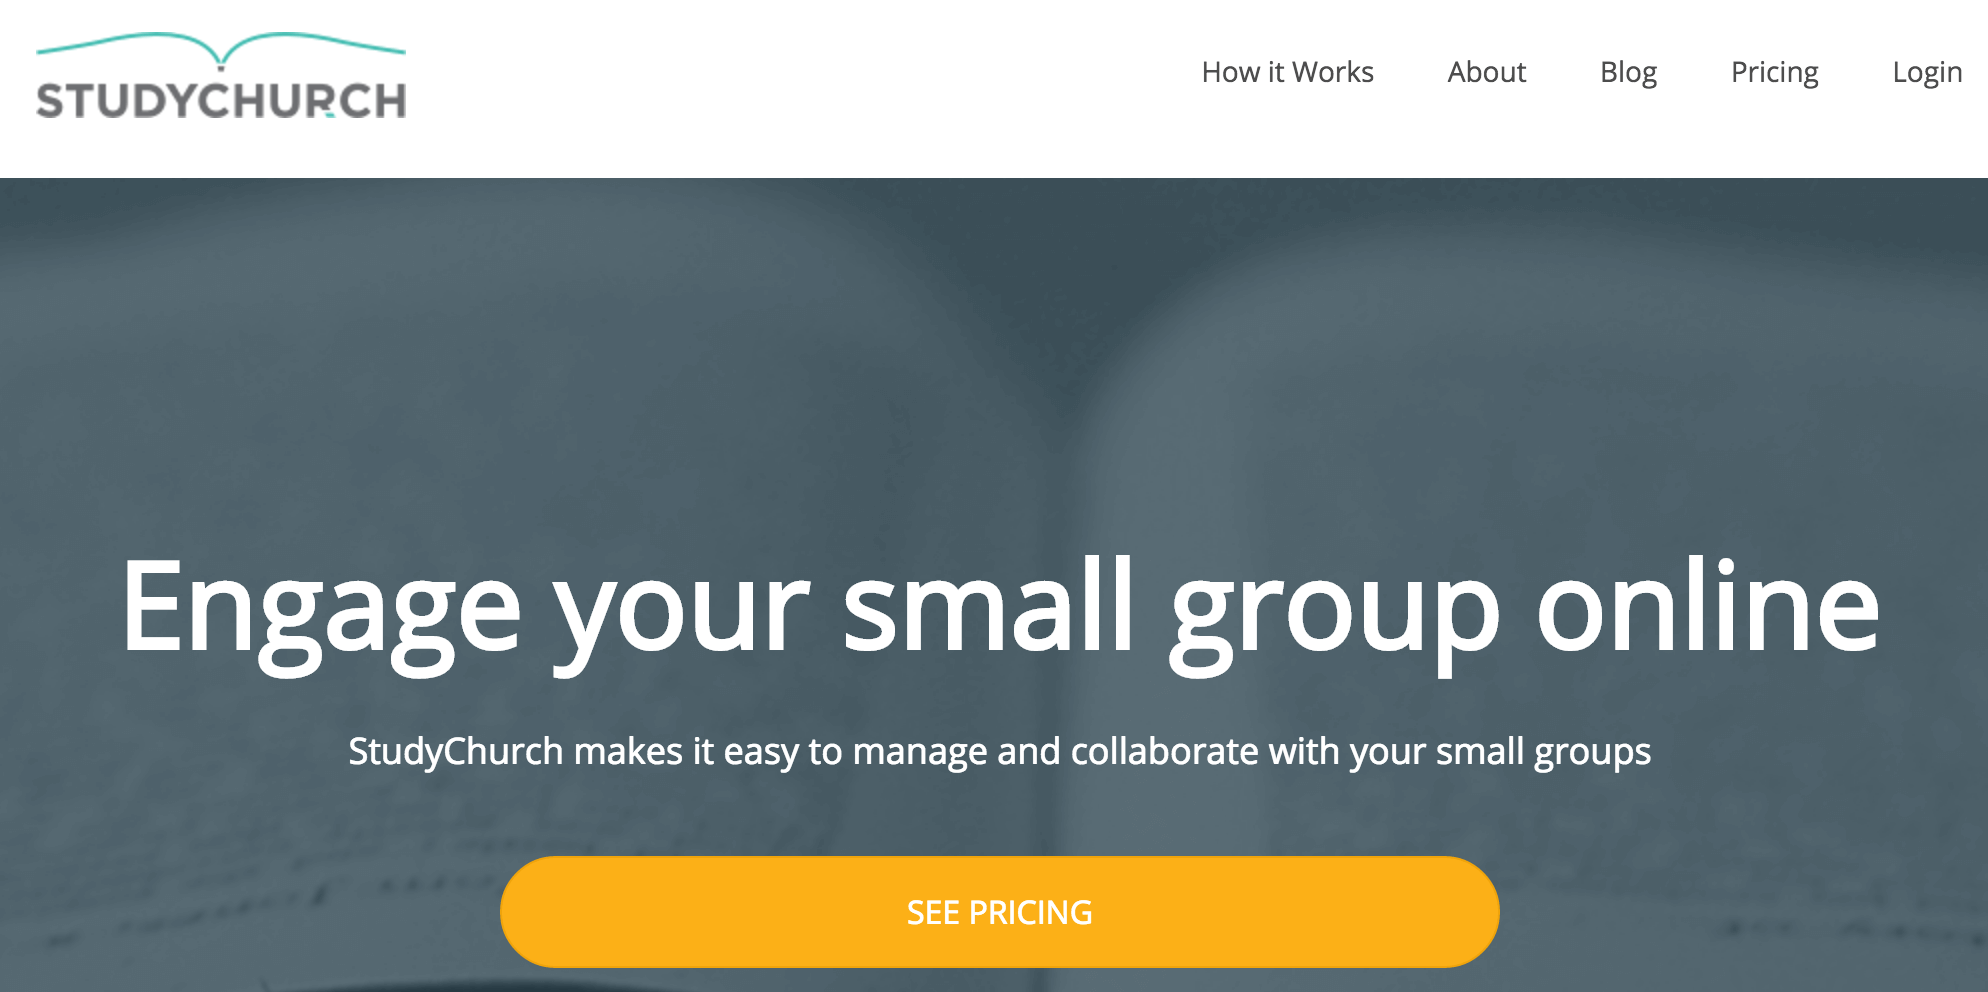 The StudyChurch homepage.